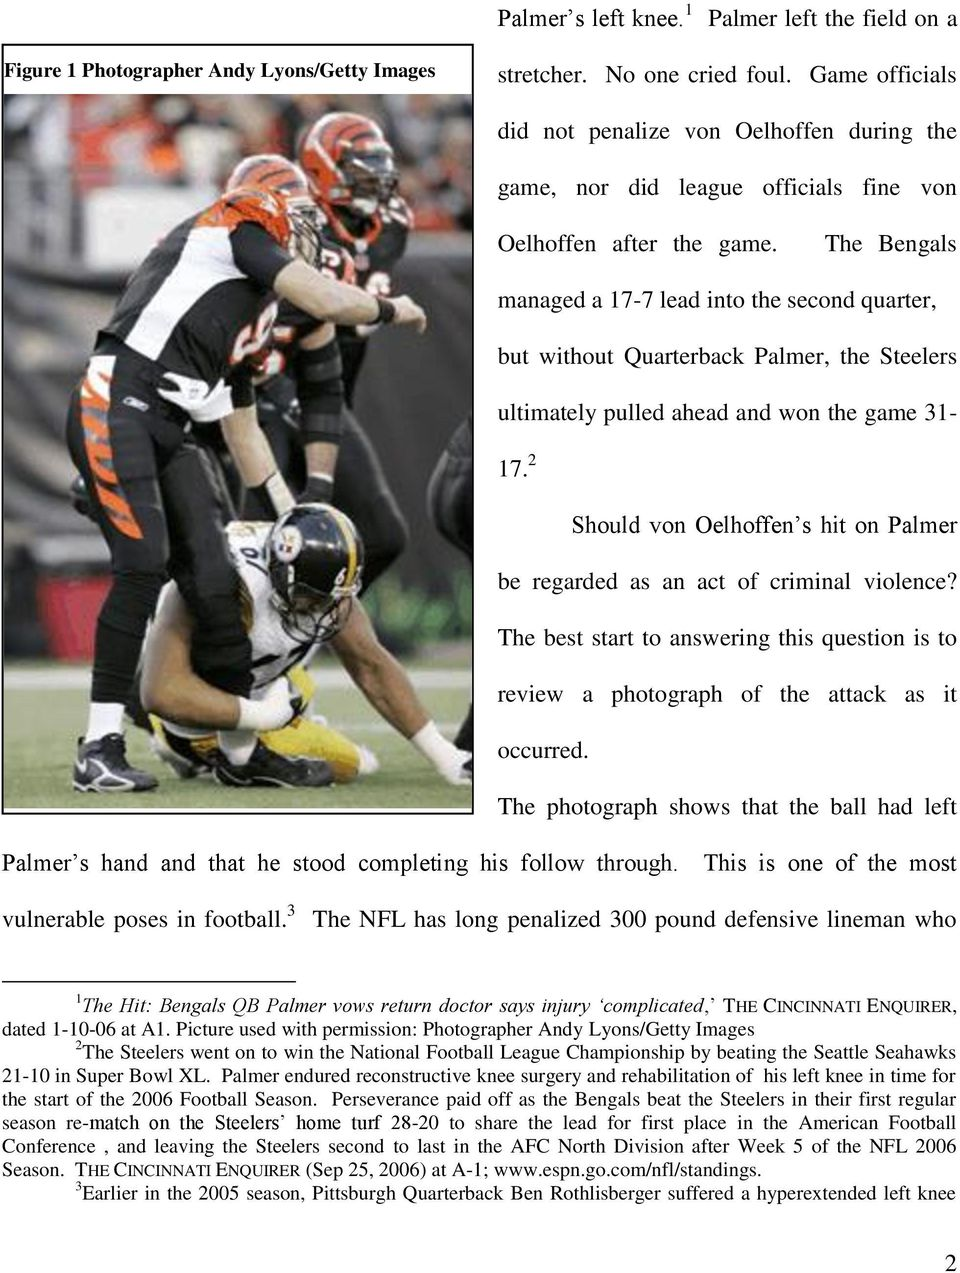 The Bengals managed a 17-7 lead into the second quarter, but without Quarterback Palmer, the Steelers ultimately pulled ahead and won the game 31-17.